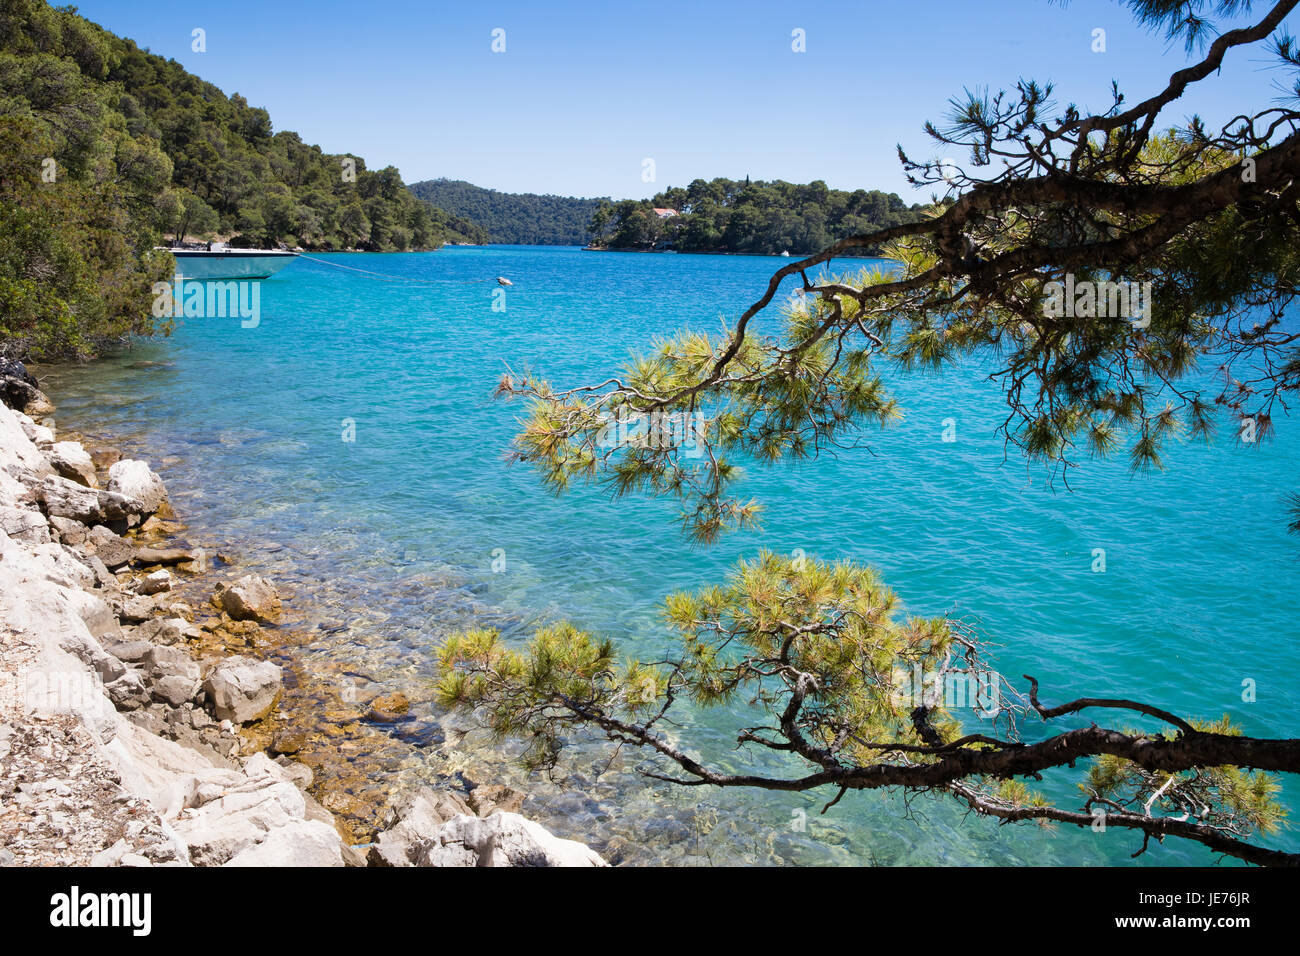 Turquoise blue waters of Malo Jezero the smaller of two inland sea lakes on the island of Mljet on the Dalmatian - Stock Image